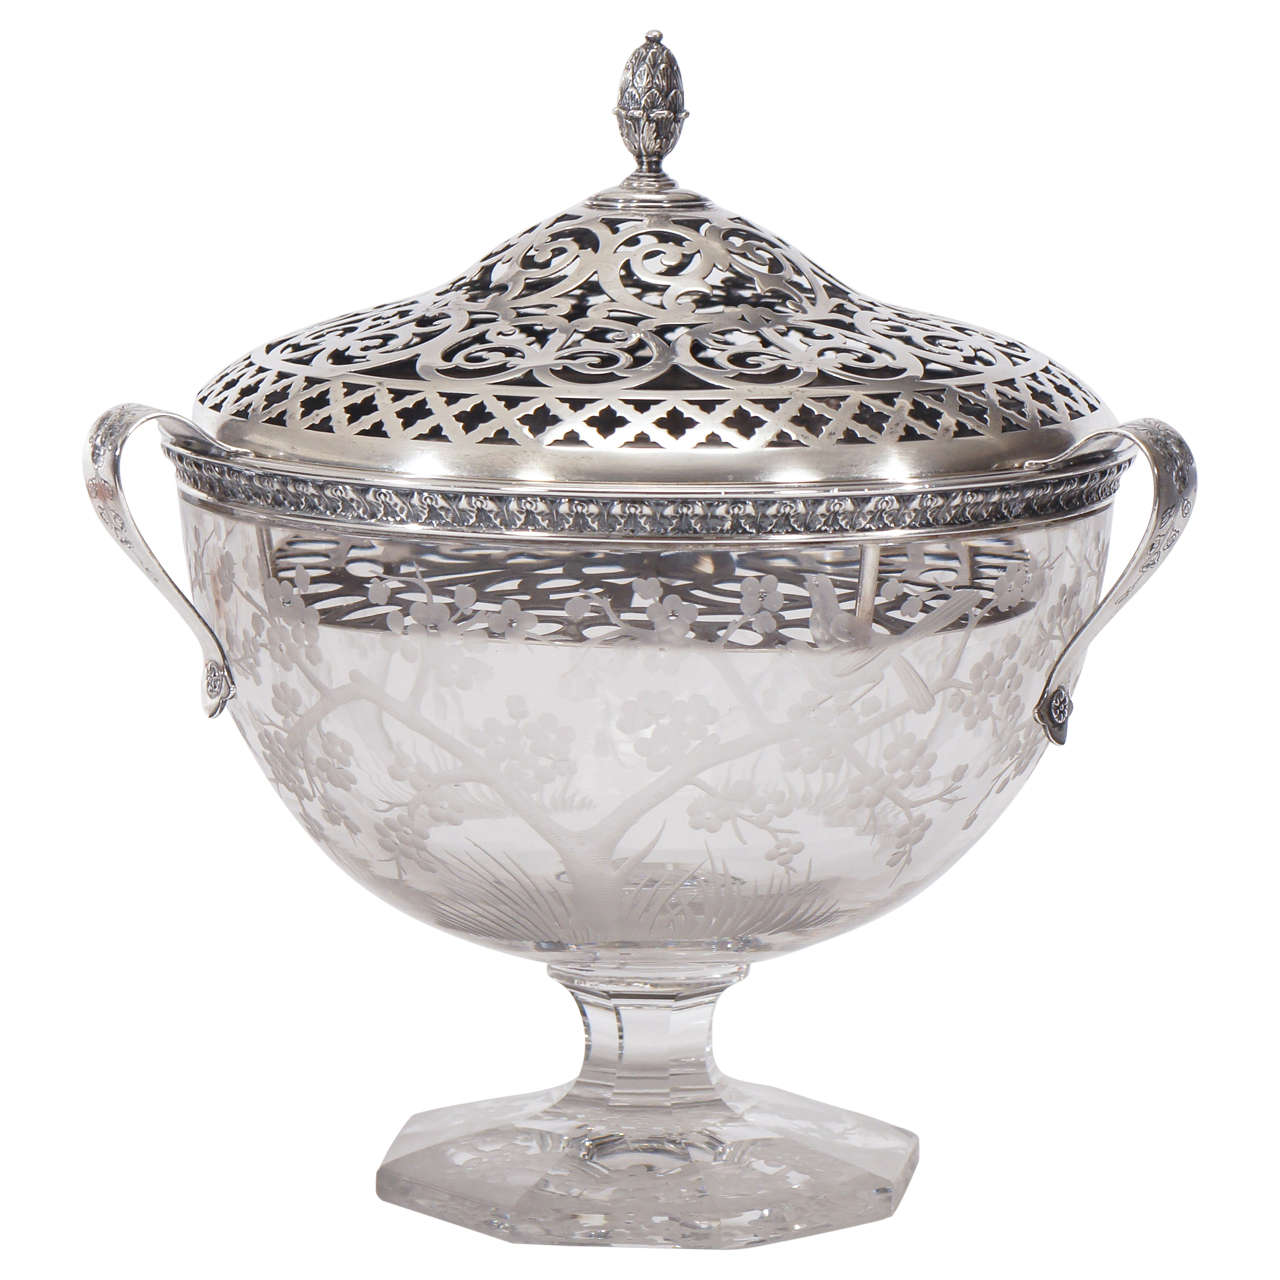 Hawkes Centerpiece with Gorham Sterling Silver Mount and Flower Frog-Grogan Co. For Sale